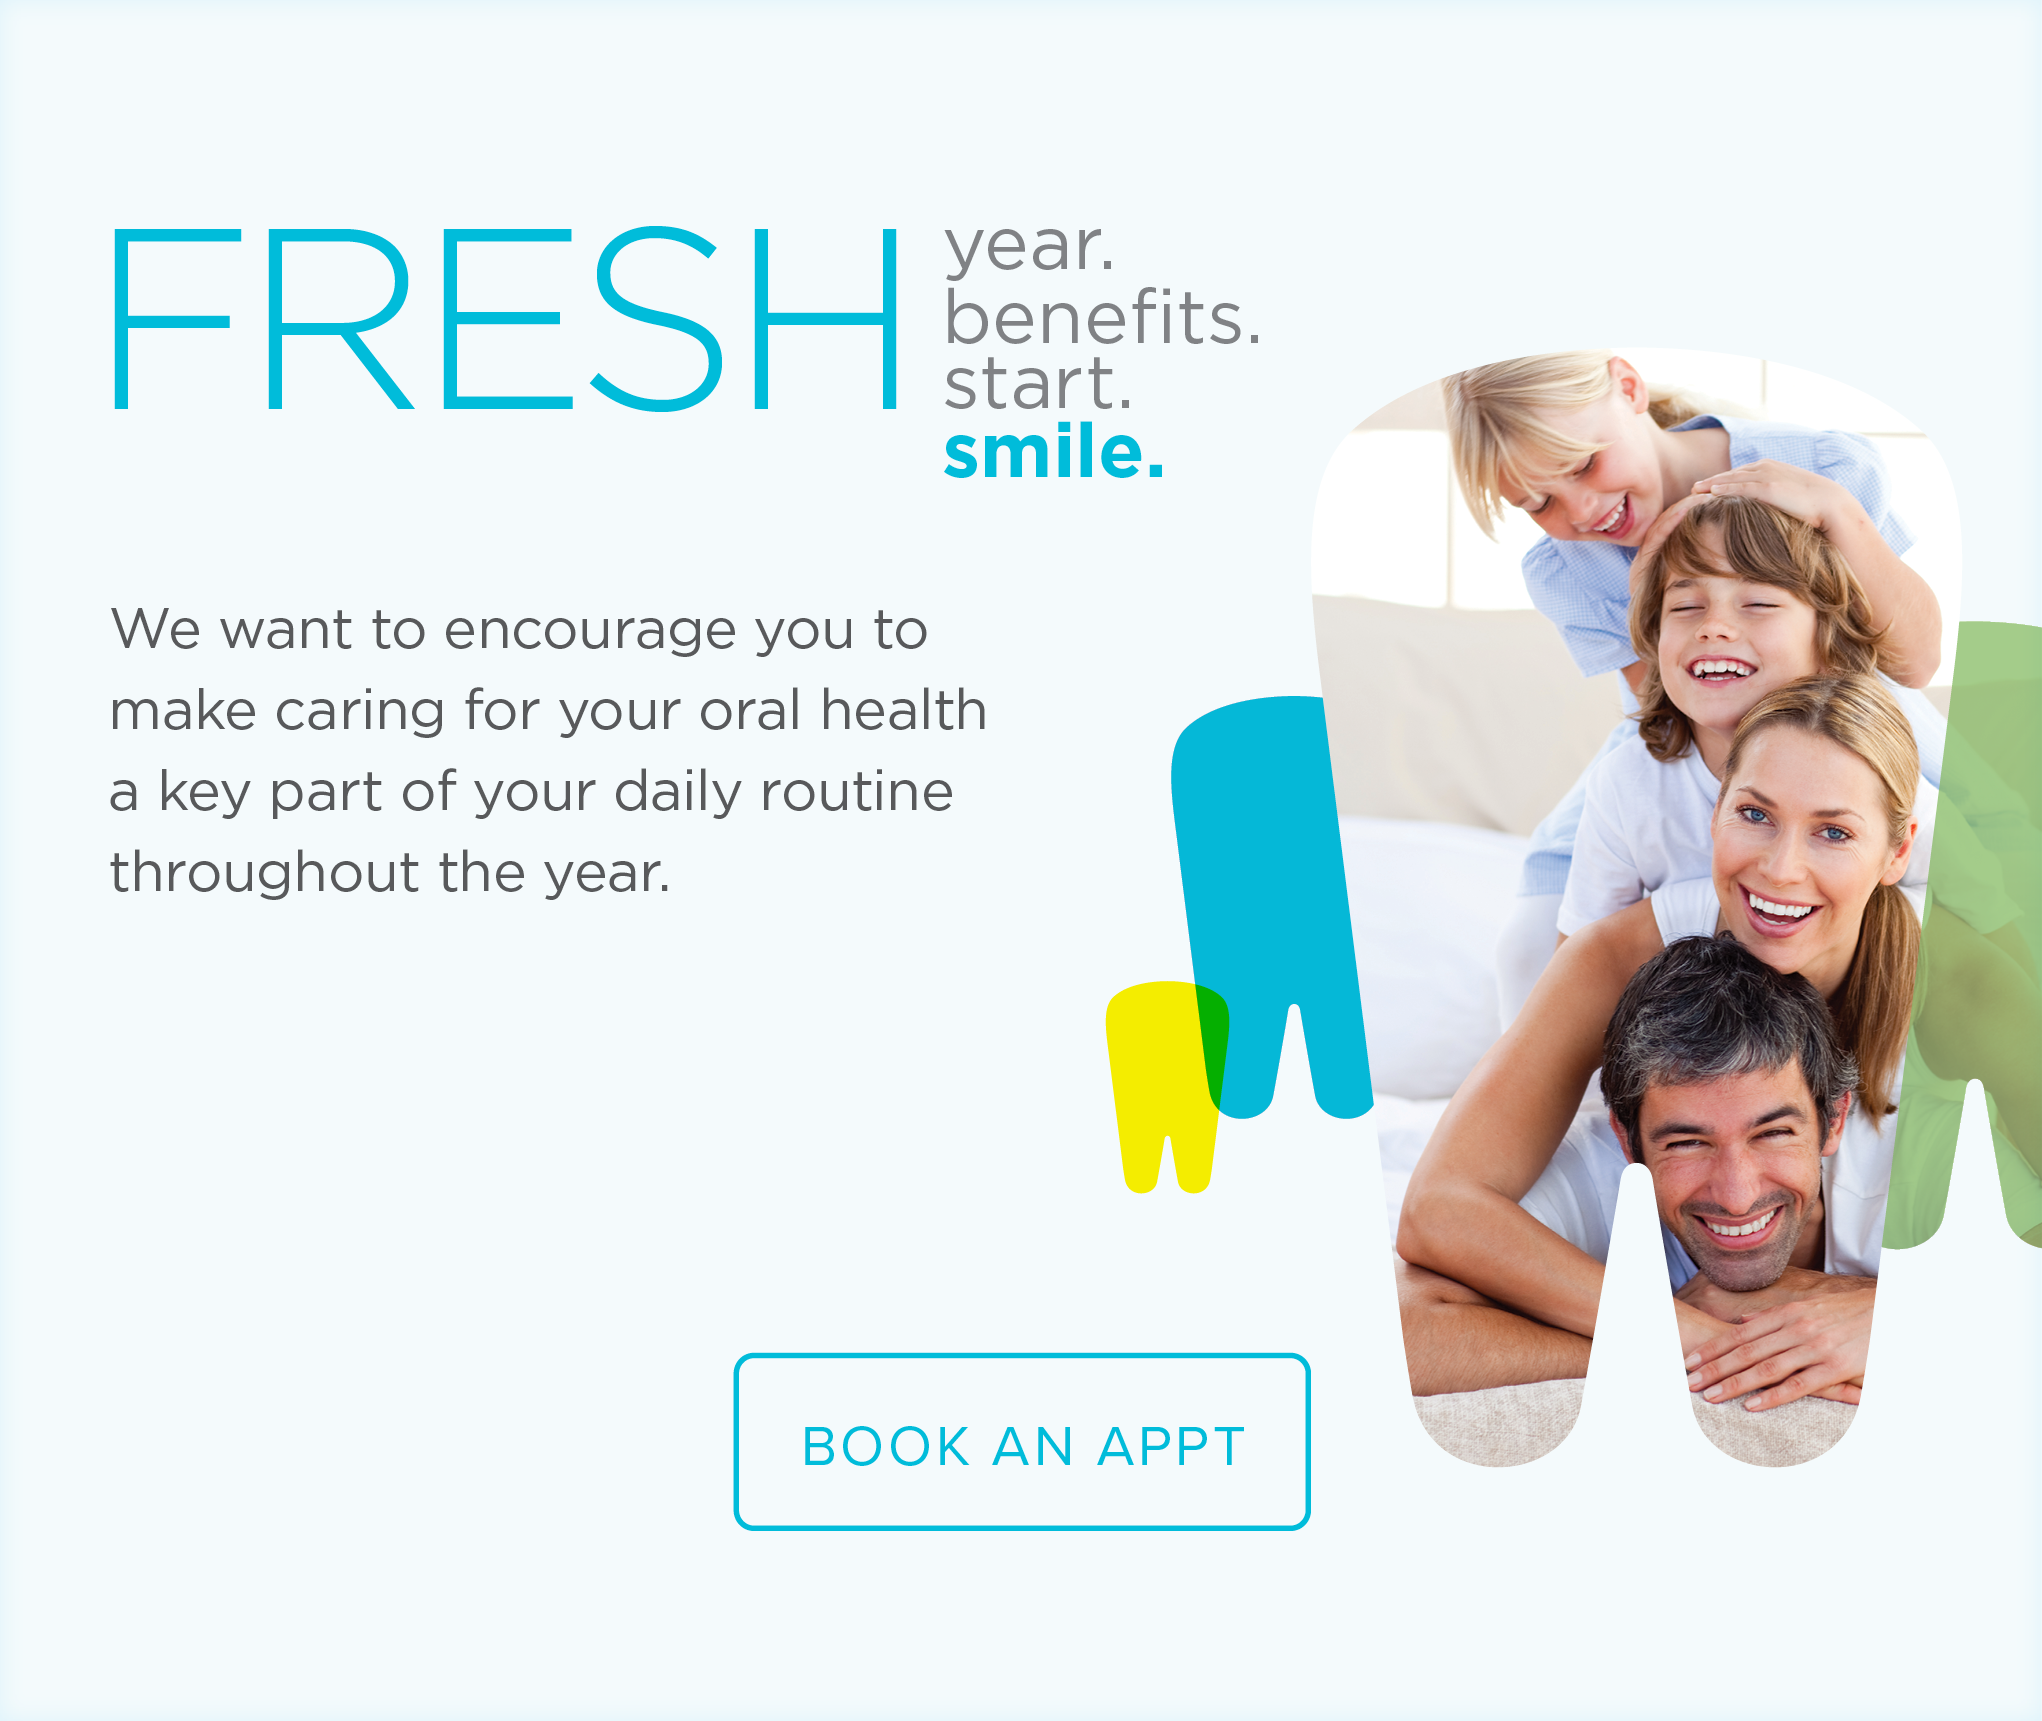 Parker Modern Dentistry and Orthodontics - Make the Most of Your Benefits